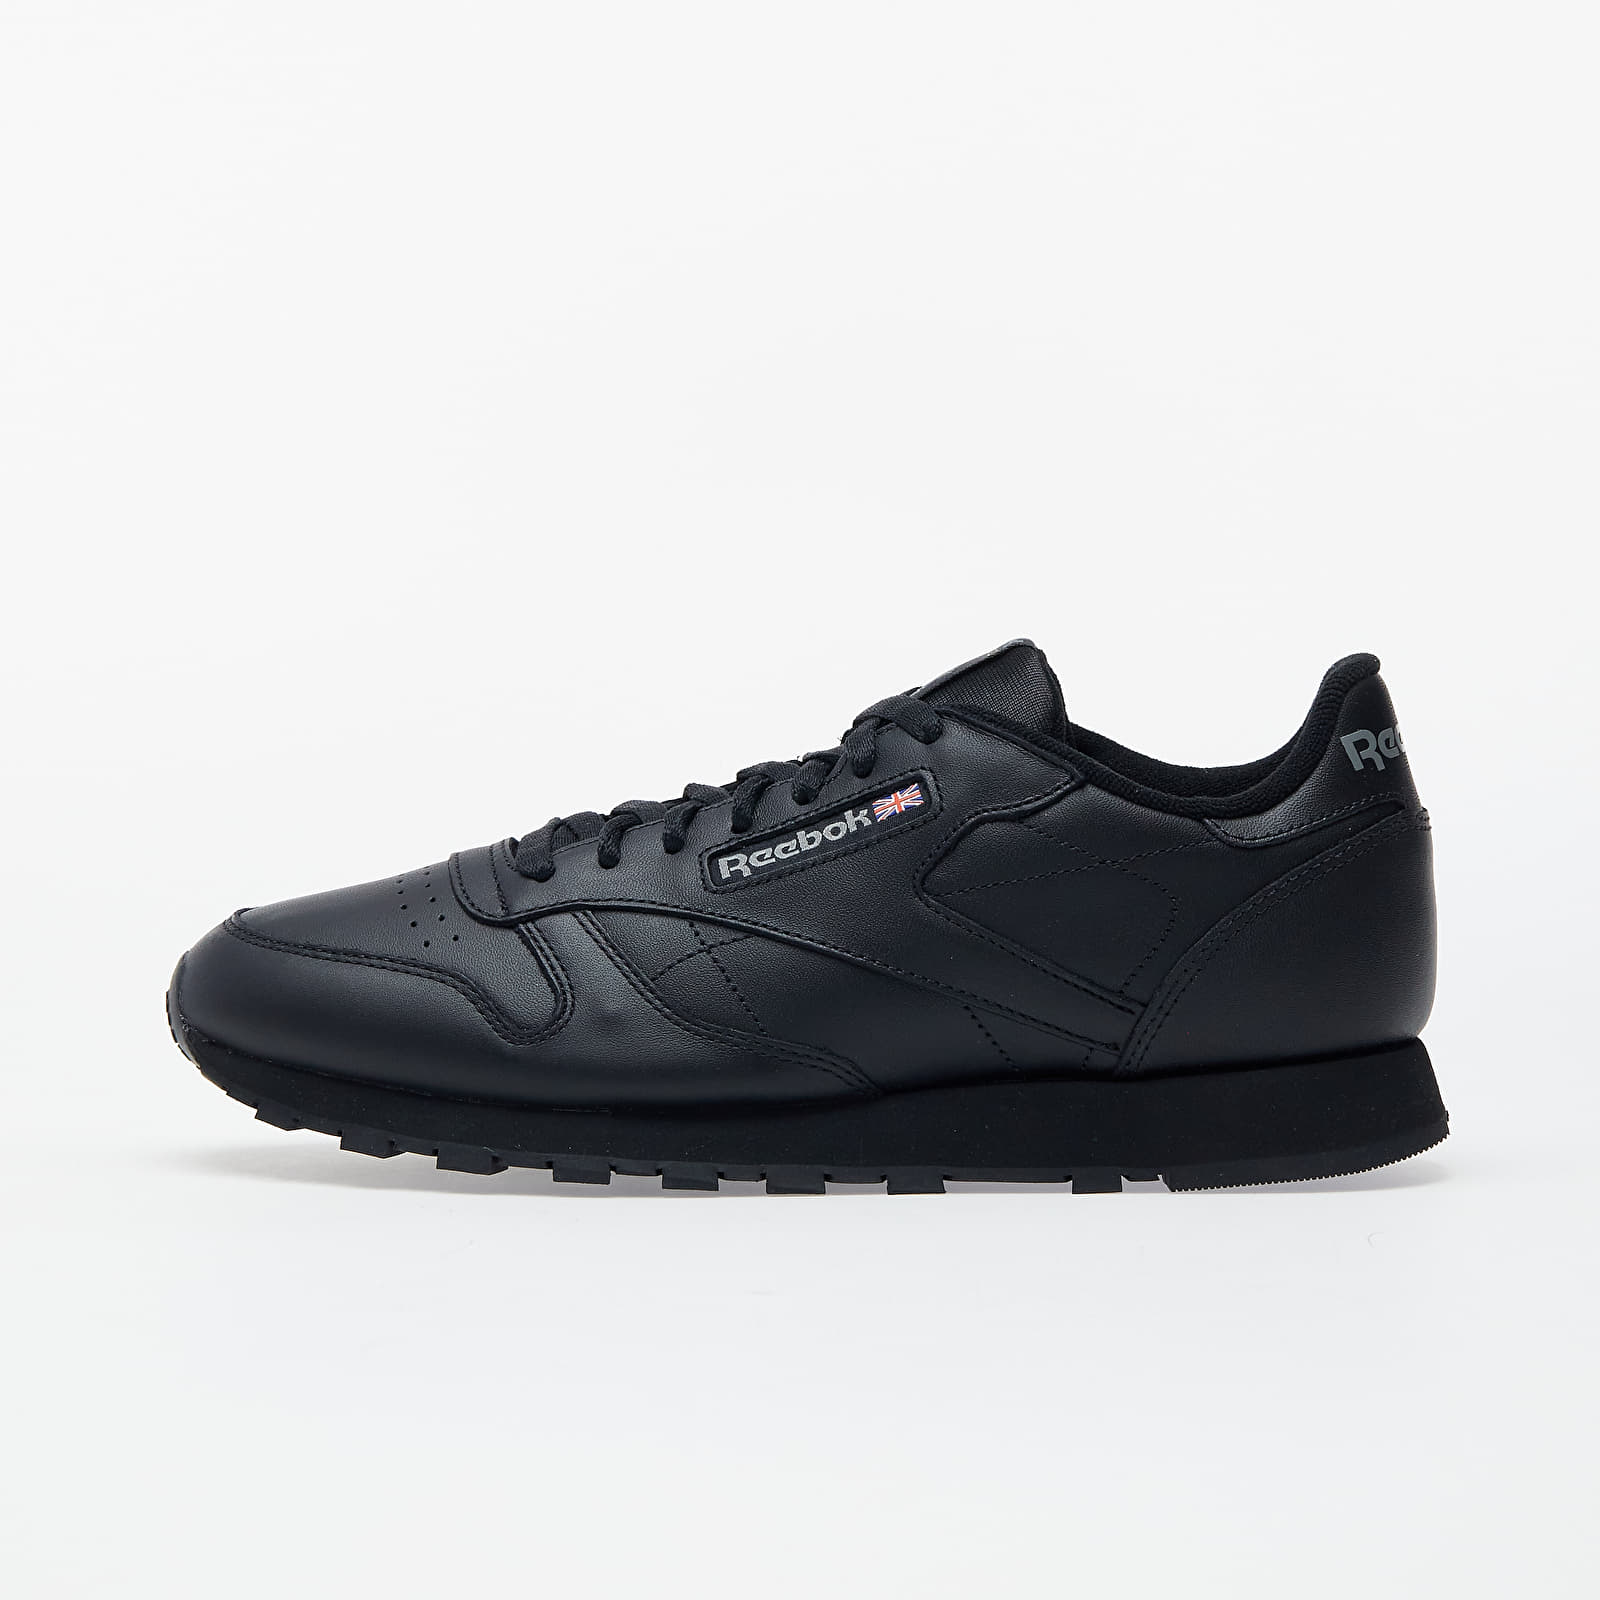 Men's shoes Reebok Classic Leather Black